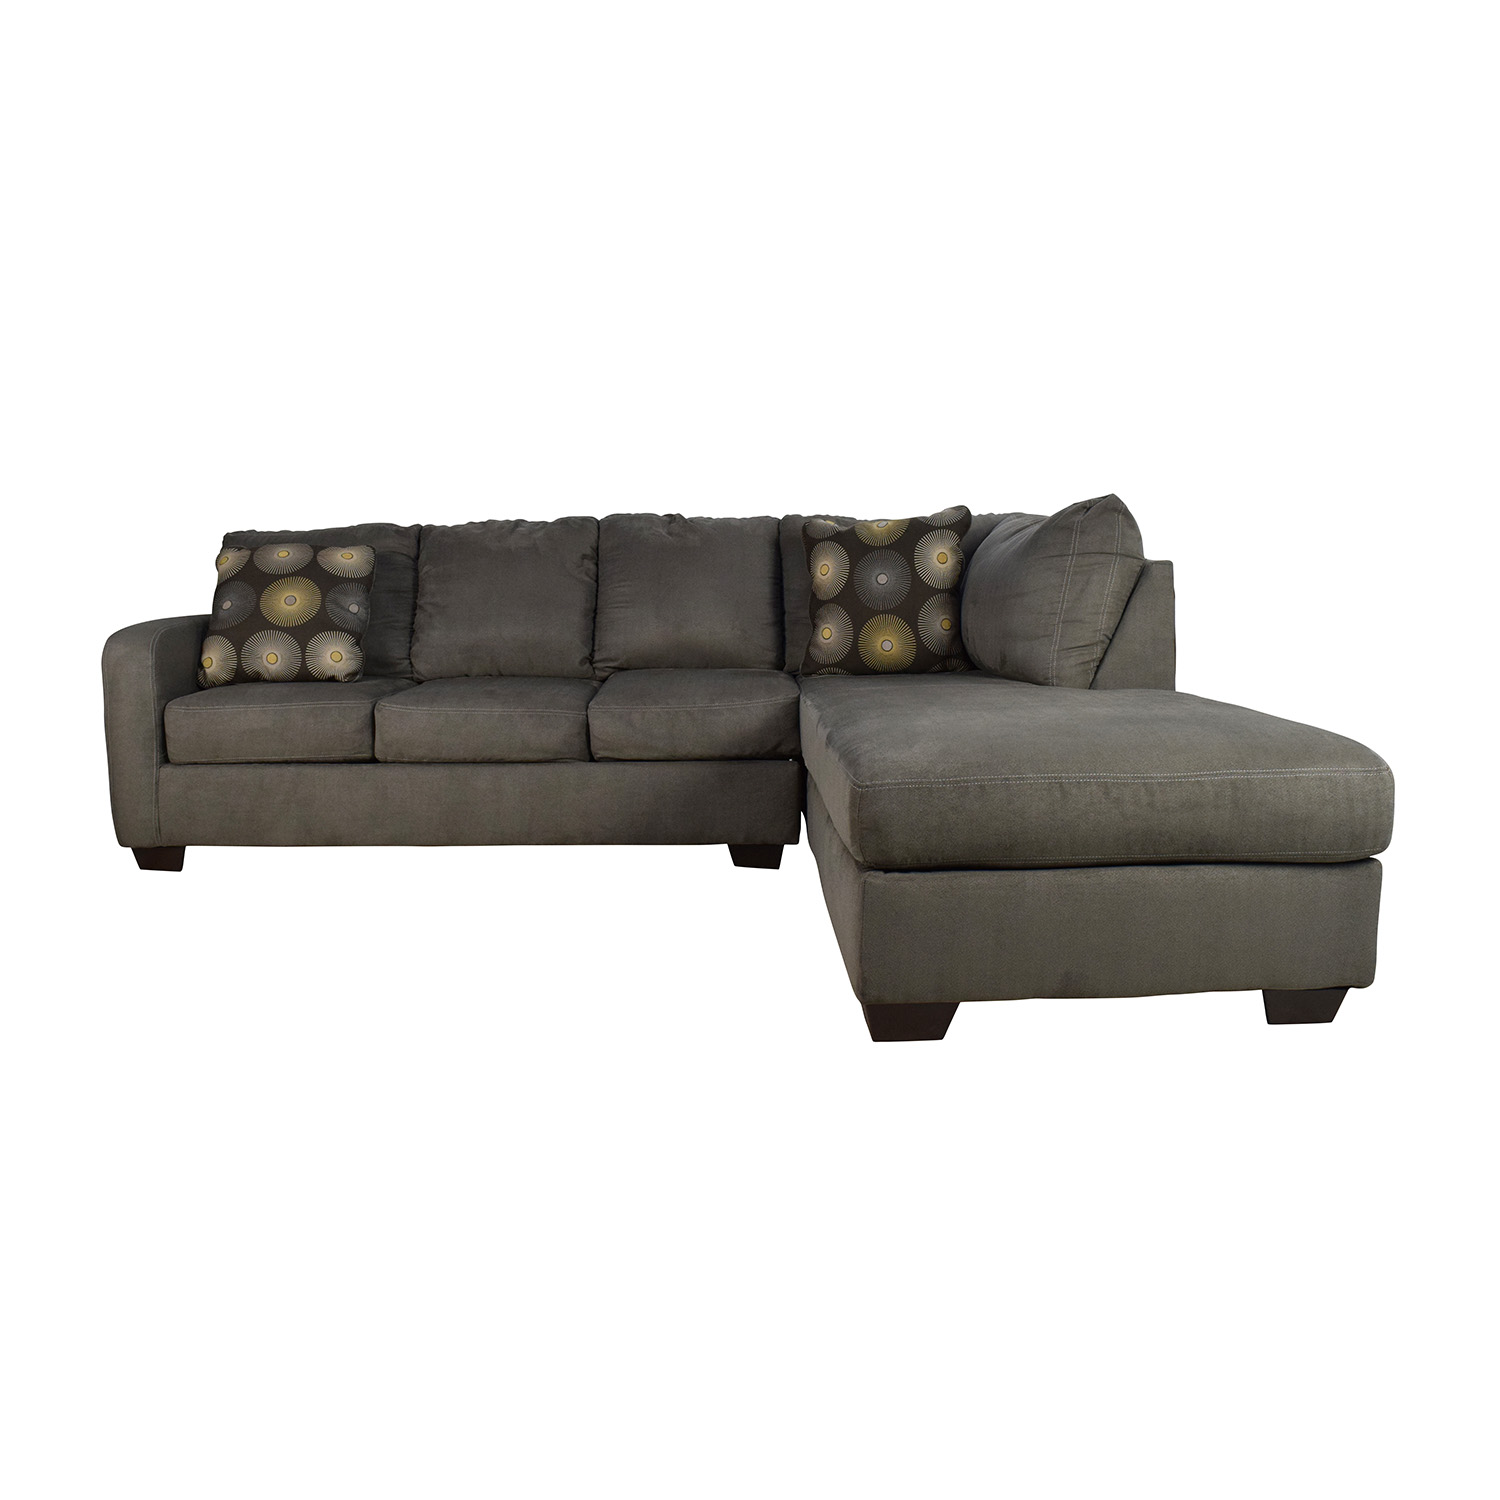 52% OFF Black Leather Tufted Sectional Sofa and Ottoman Sofas